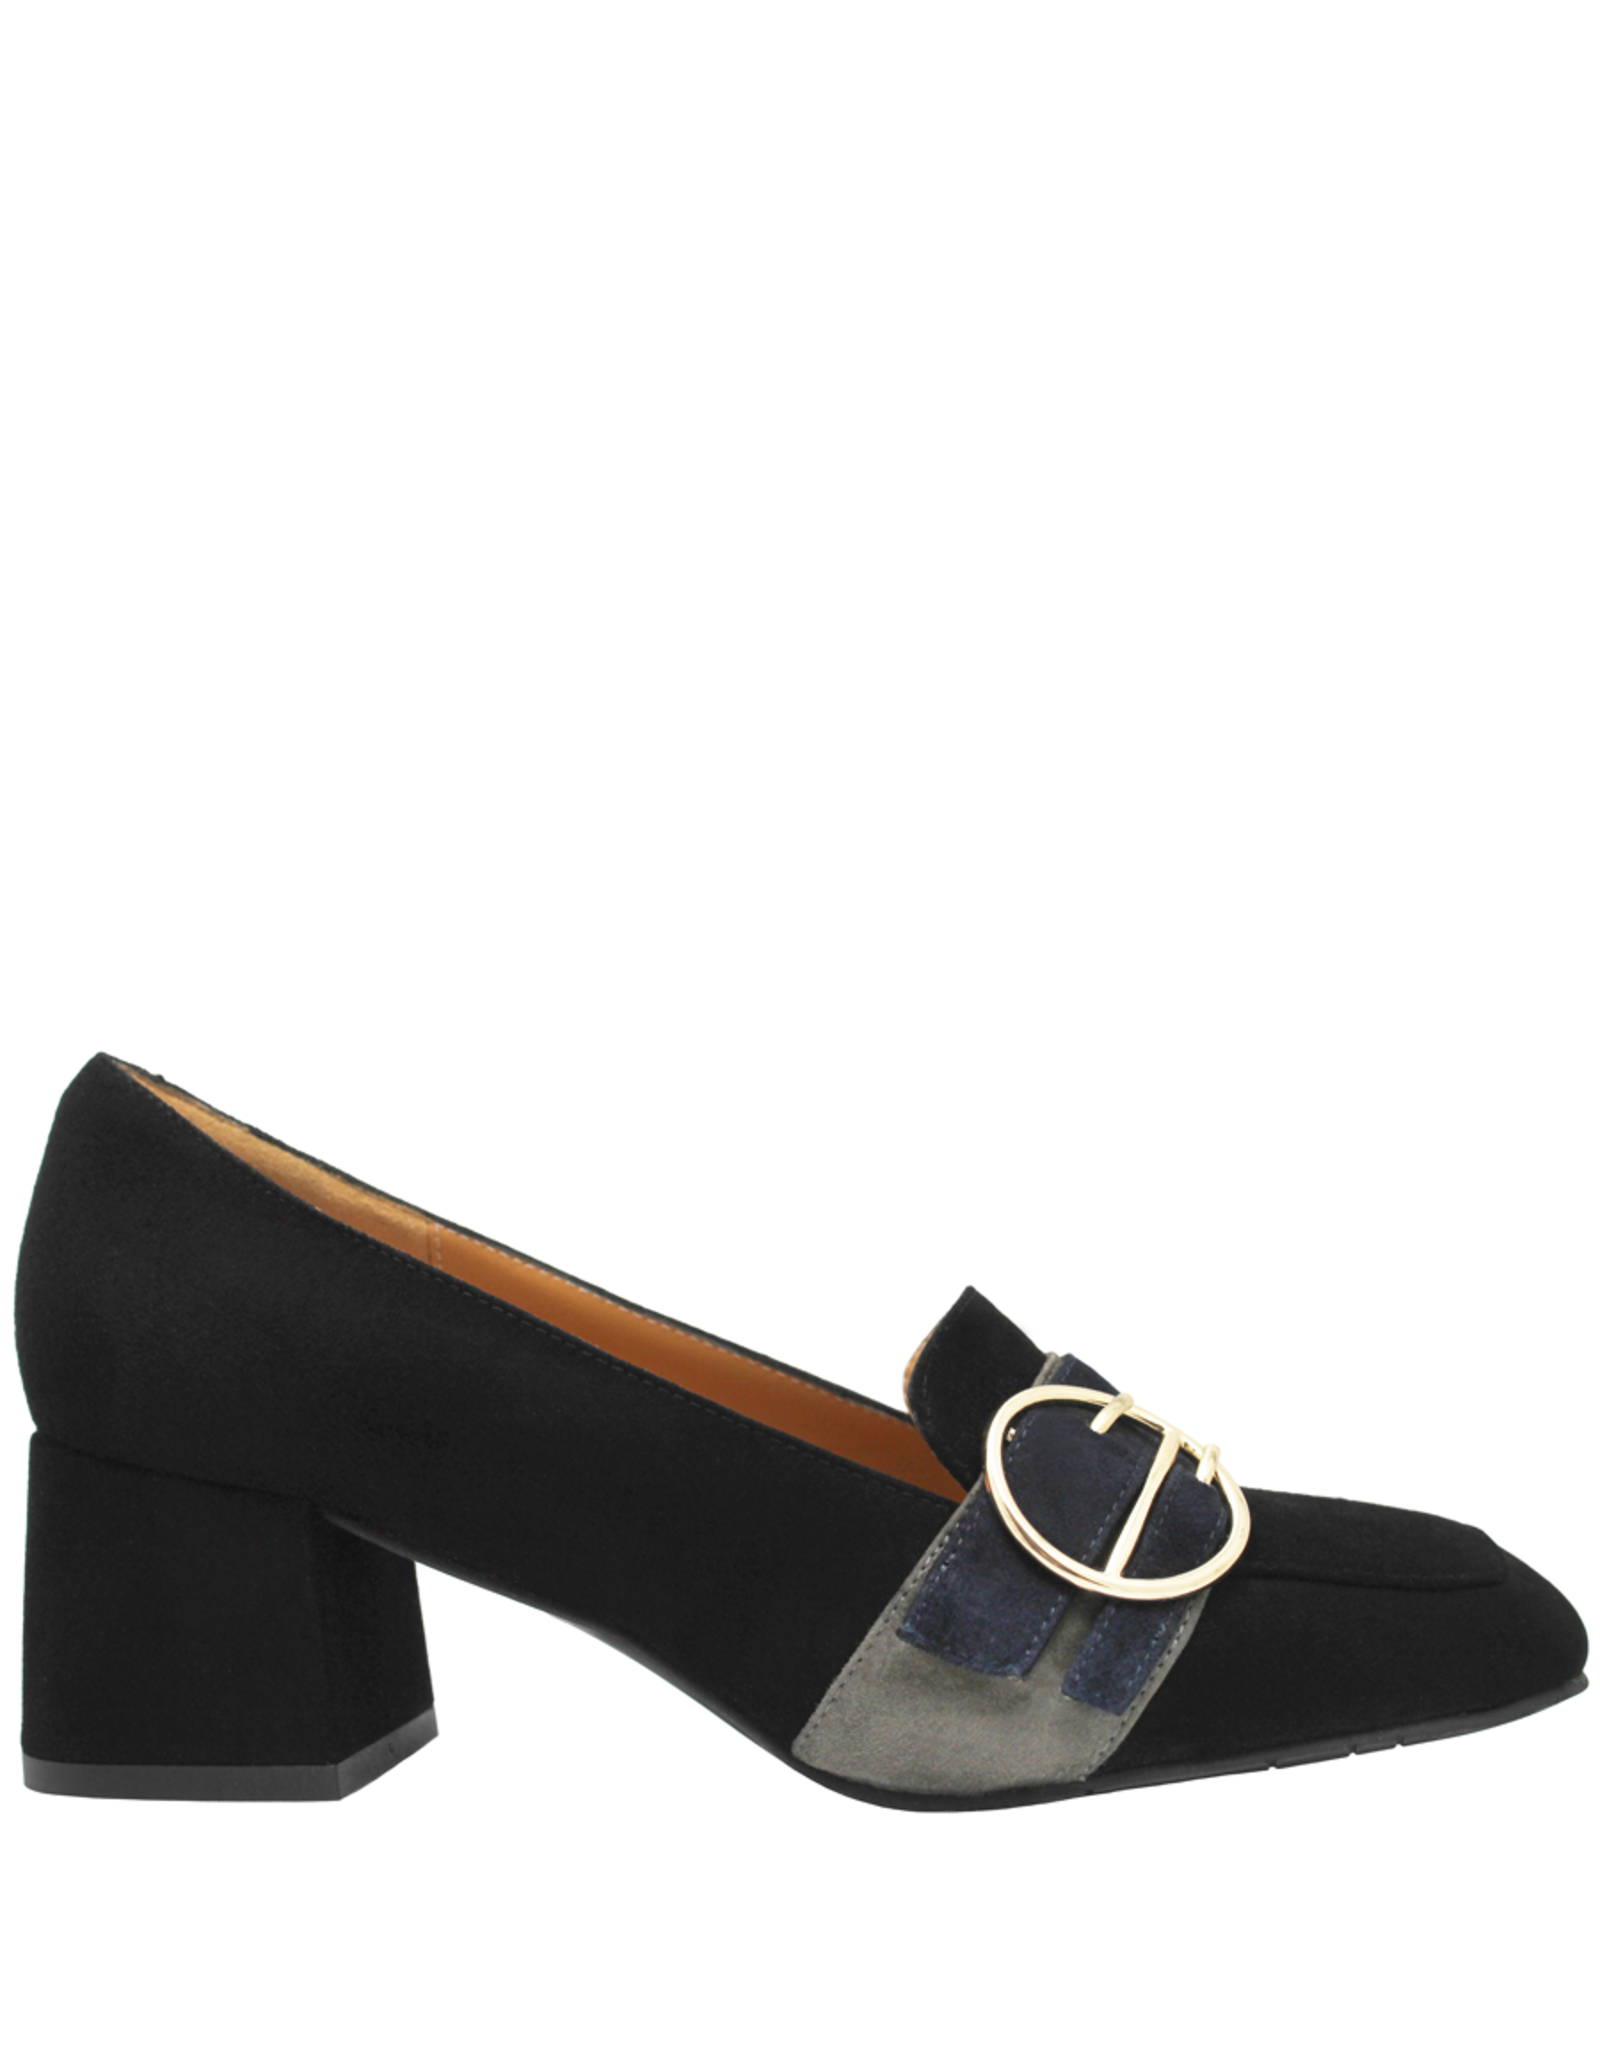 ModadiFausto ModadiFausto BlackSuede Medium Heel Loafer W/ Round Buckle 6354